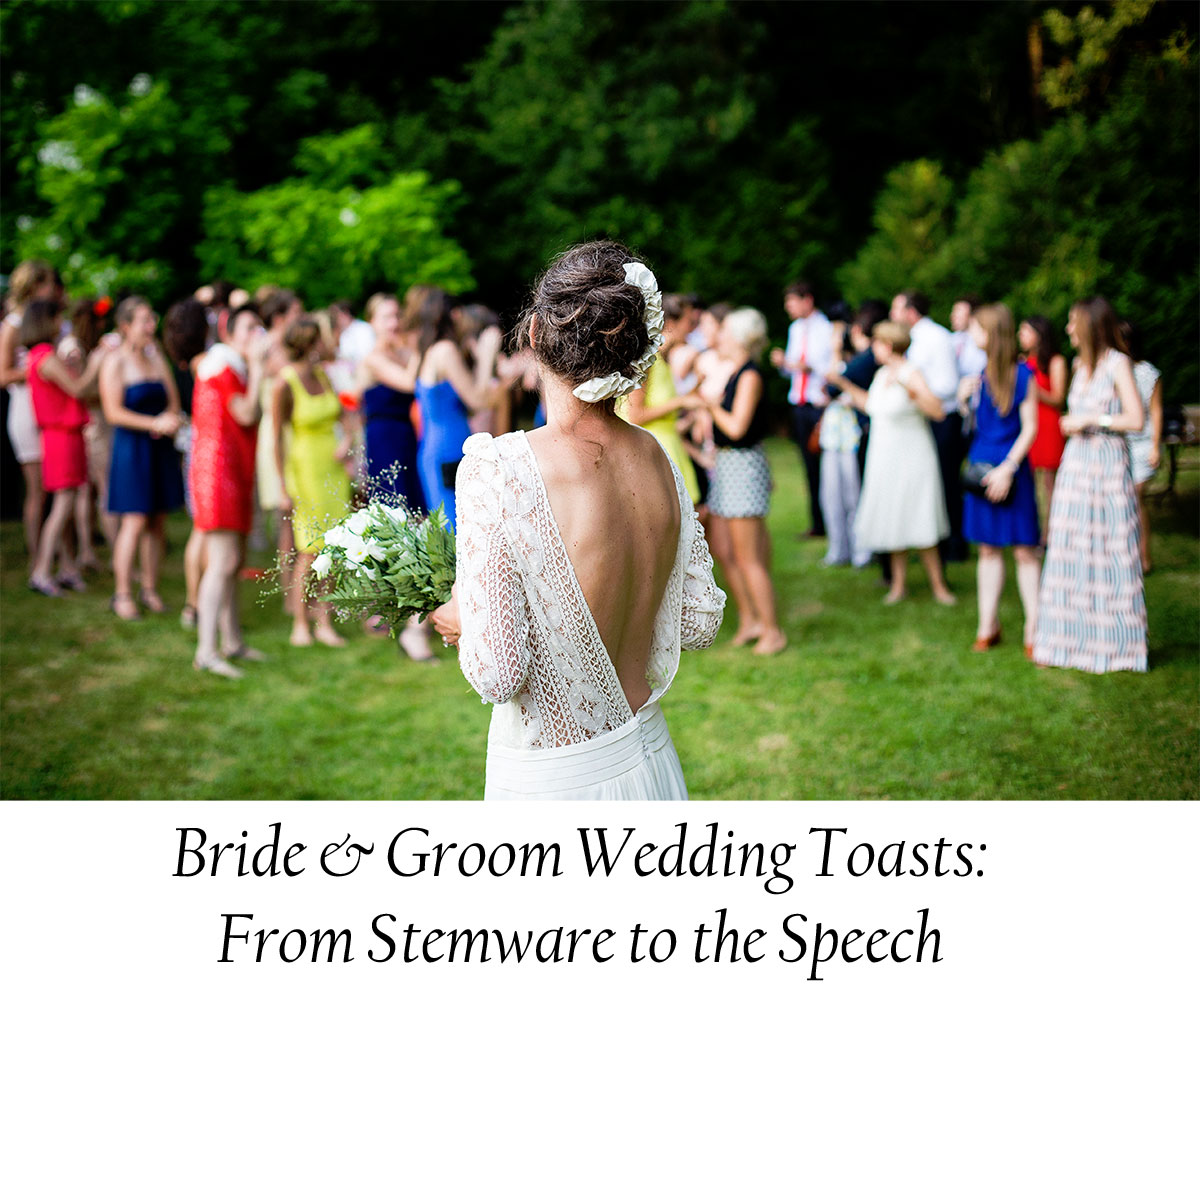 bride and groom wedding toasts from stemware to the speech